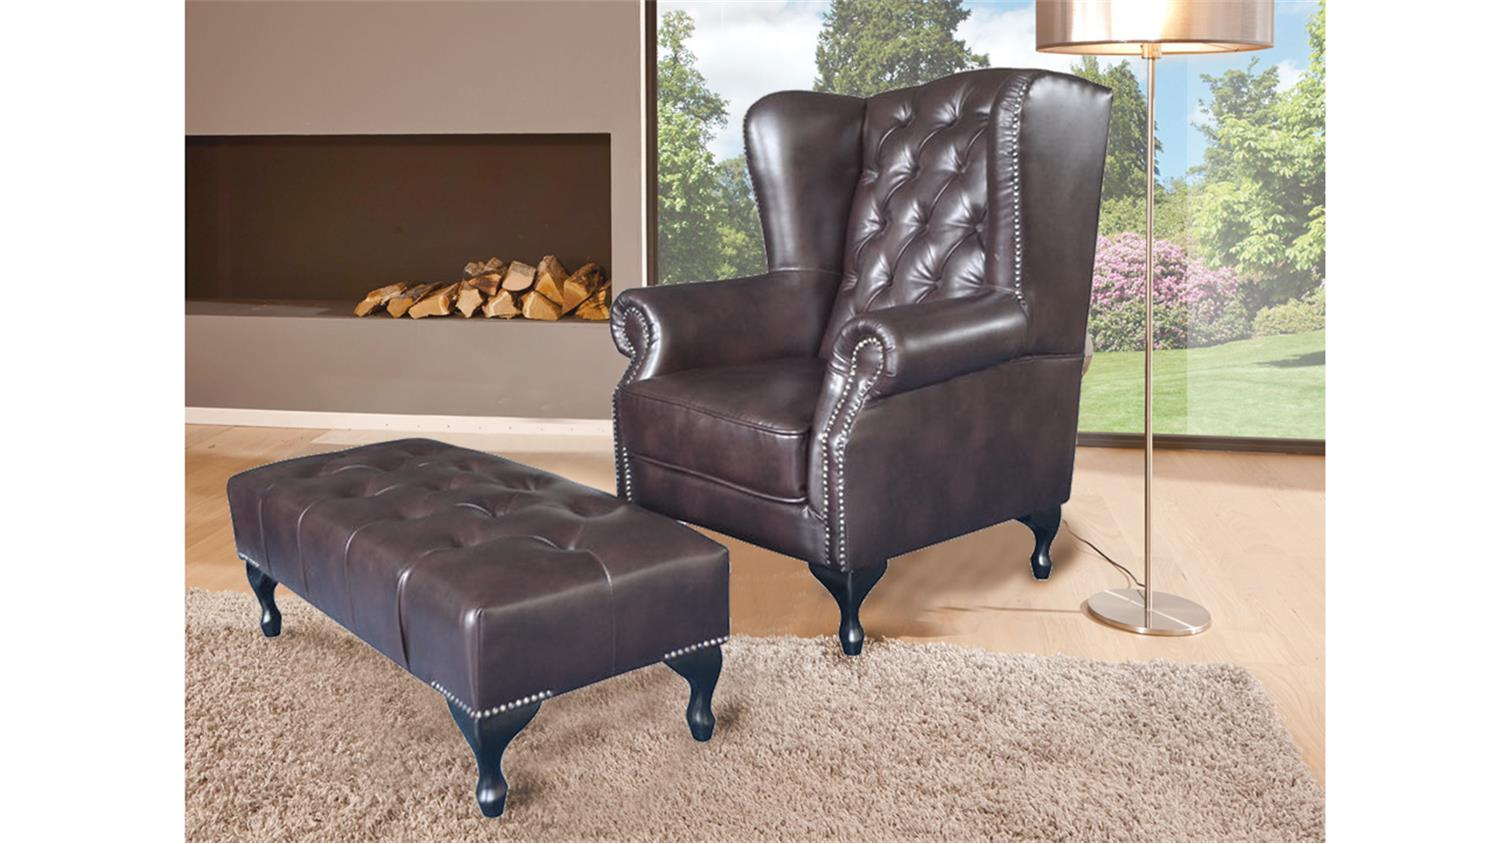 Ohrensessel Mit Hocker Chesterfield Sessel Mit Hocker